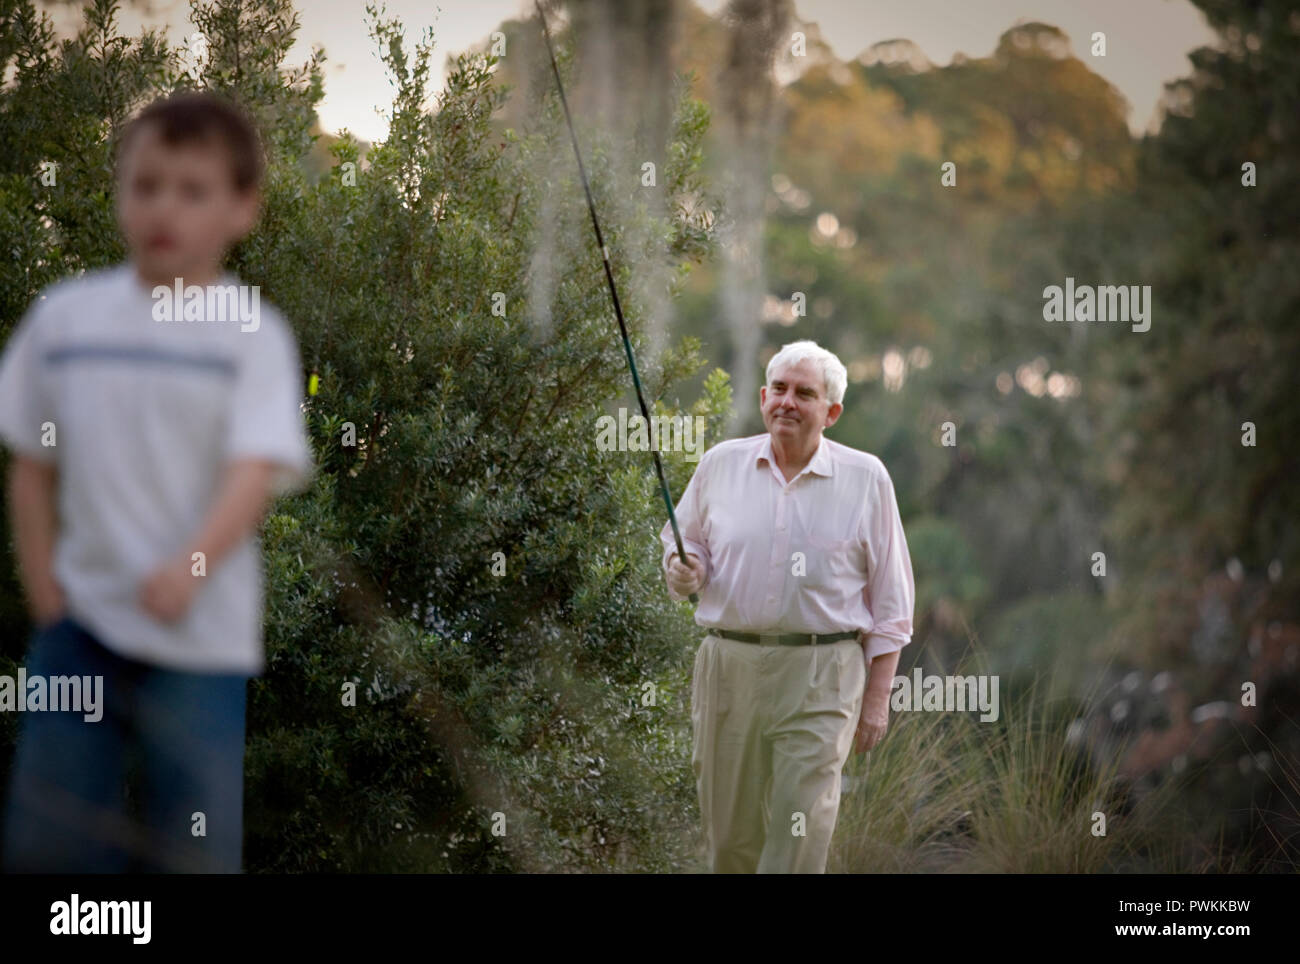 Senior adult man walking through scrubland carrying a fishing rod with his young grandson. - Stock Image